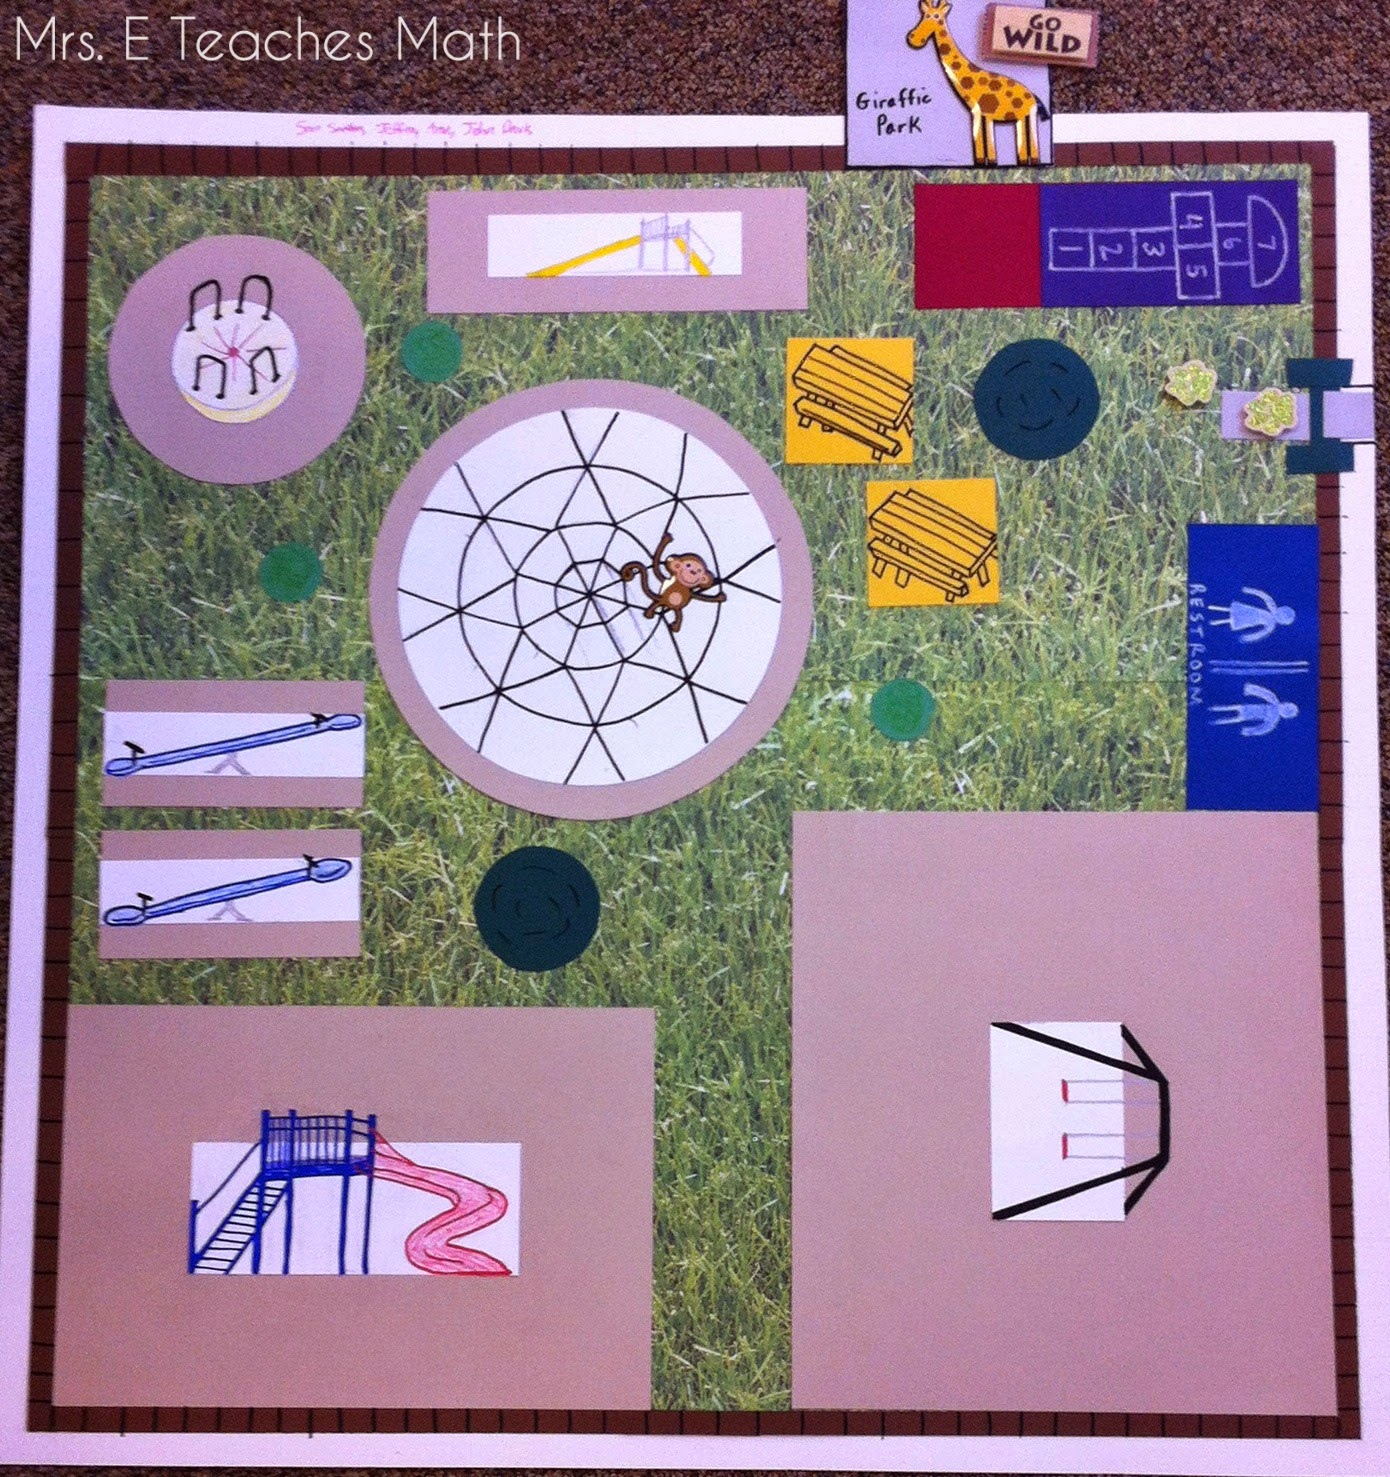 Playground Project - using perimeter and area in geometry